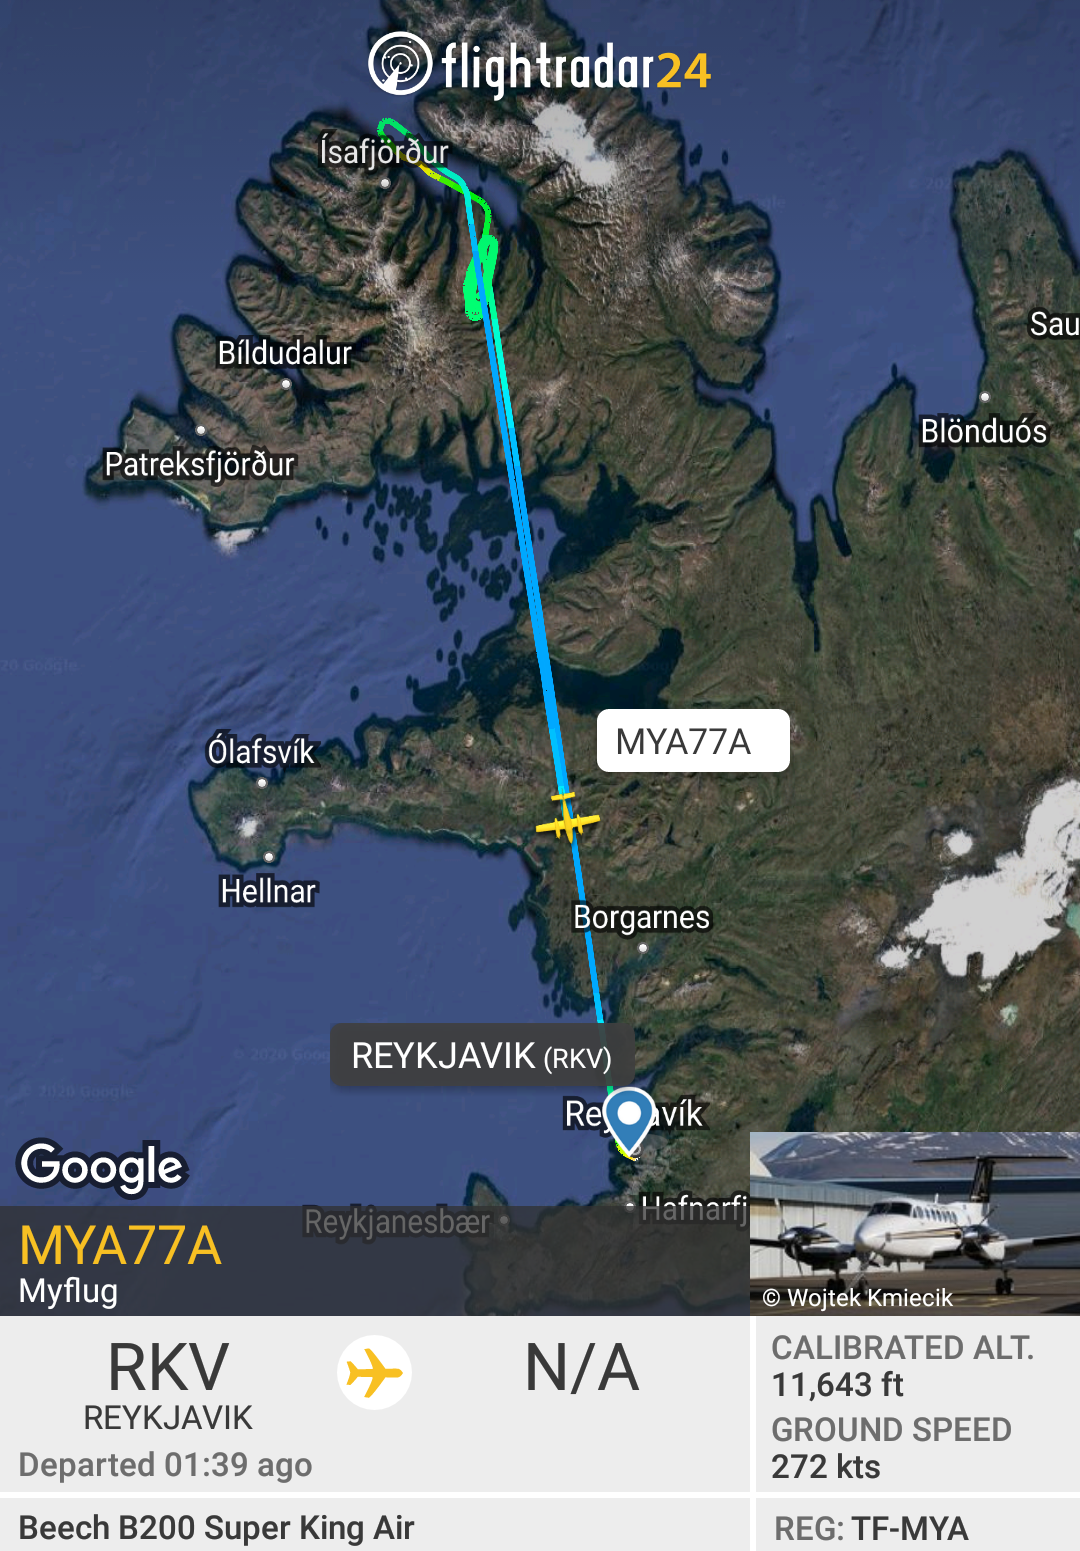 The flight path of Beechcraft B200 King Air reg. TF-MYA, performing Mýflug flight from Reykjavik to Ísafjörður // Source: Flightradar24